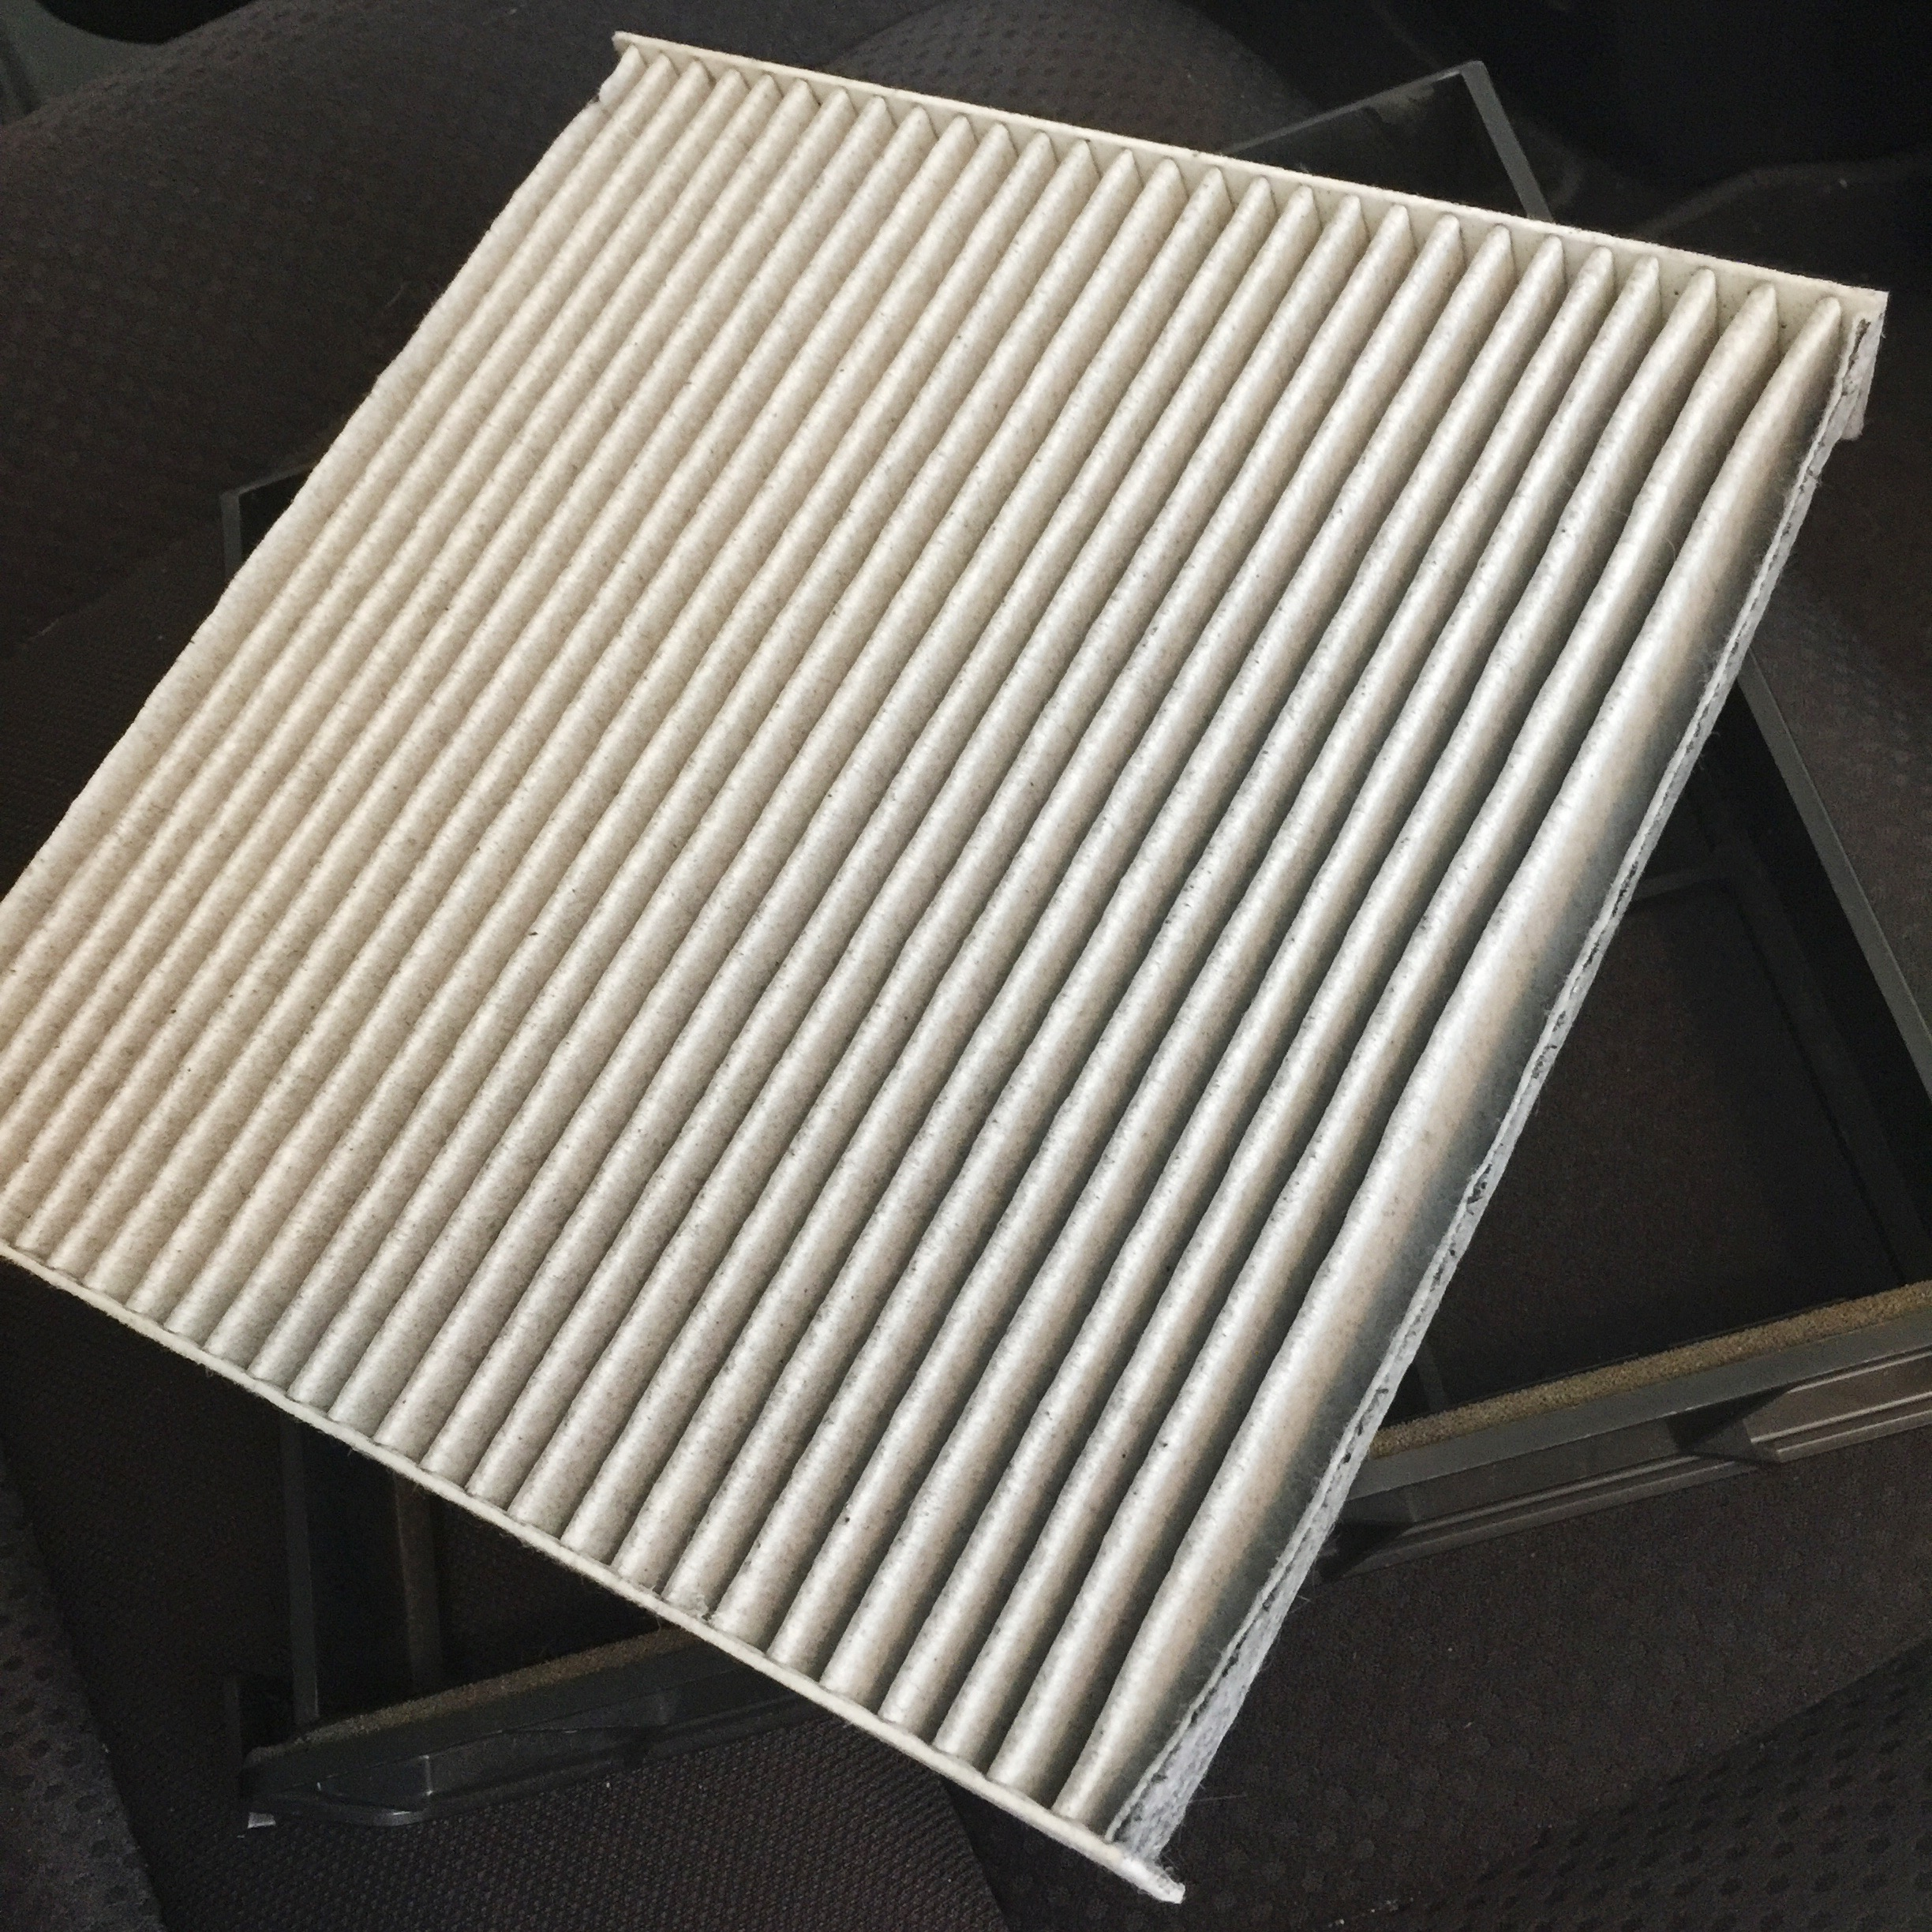 Take the case that the old air filter is stored in and take it out and replace it with your new fram fresh breeze cabin air filter